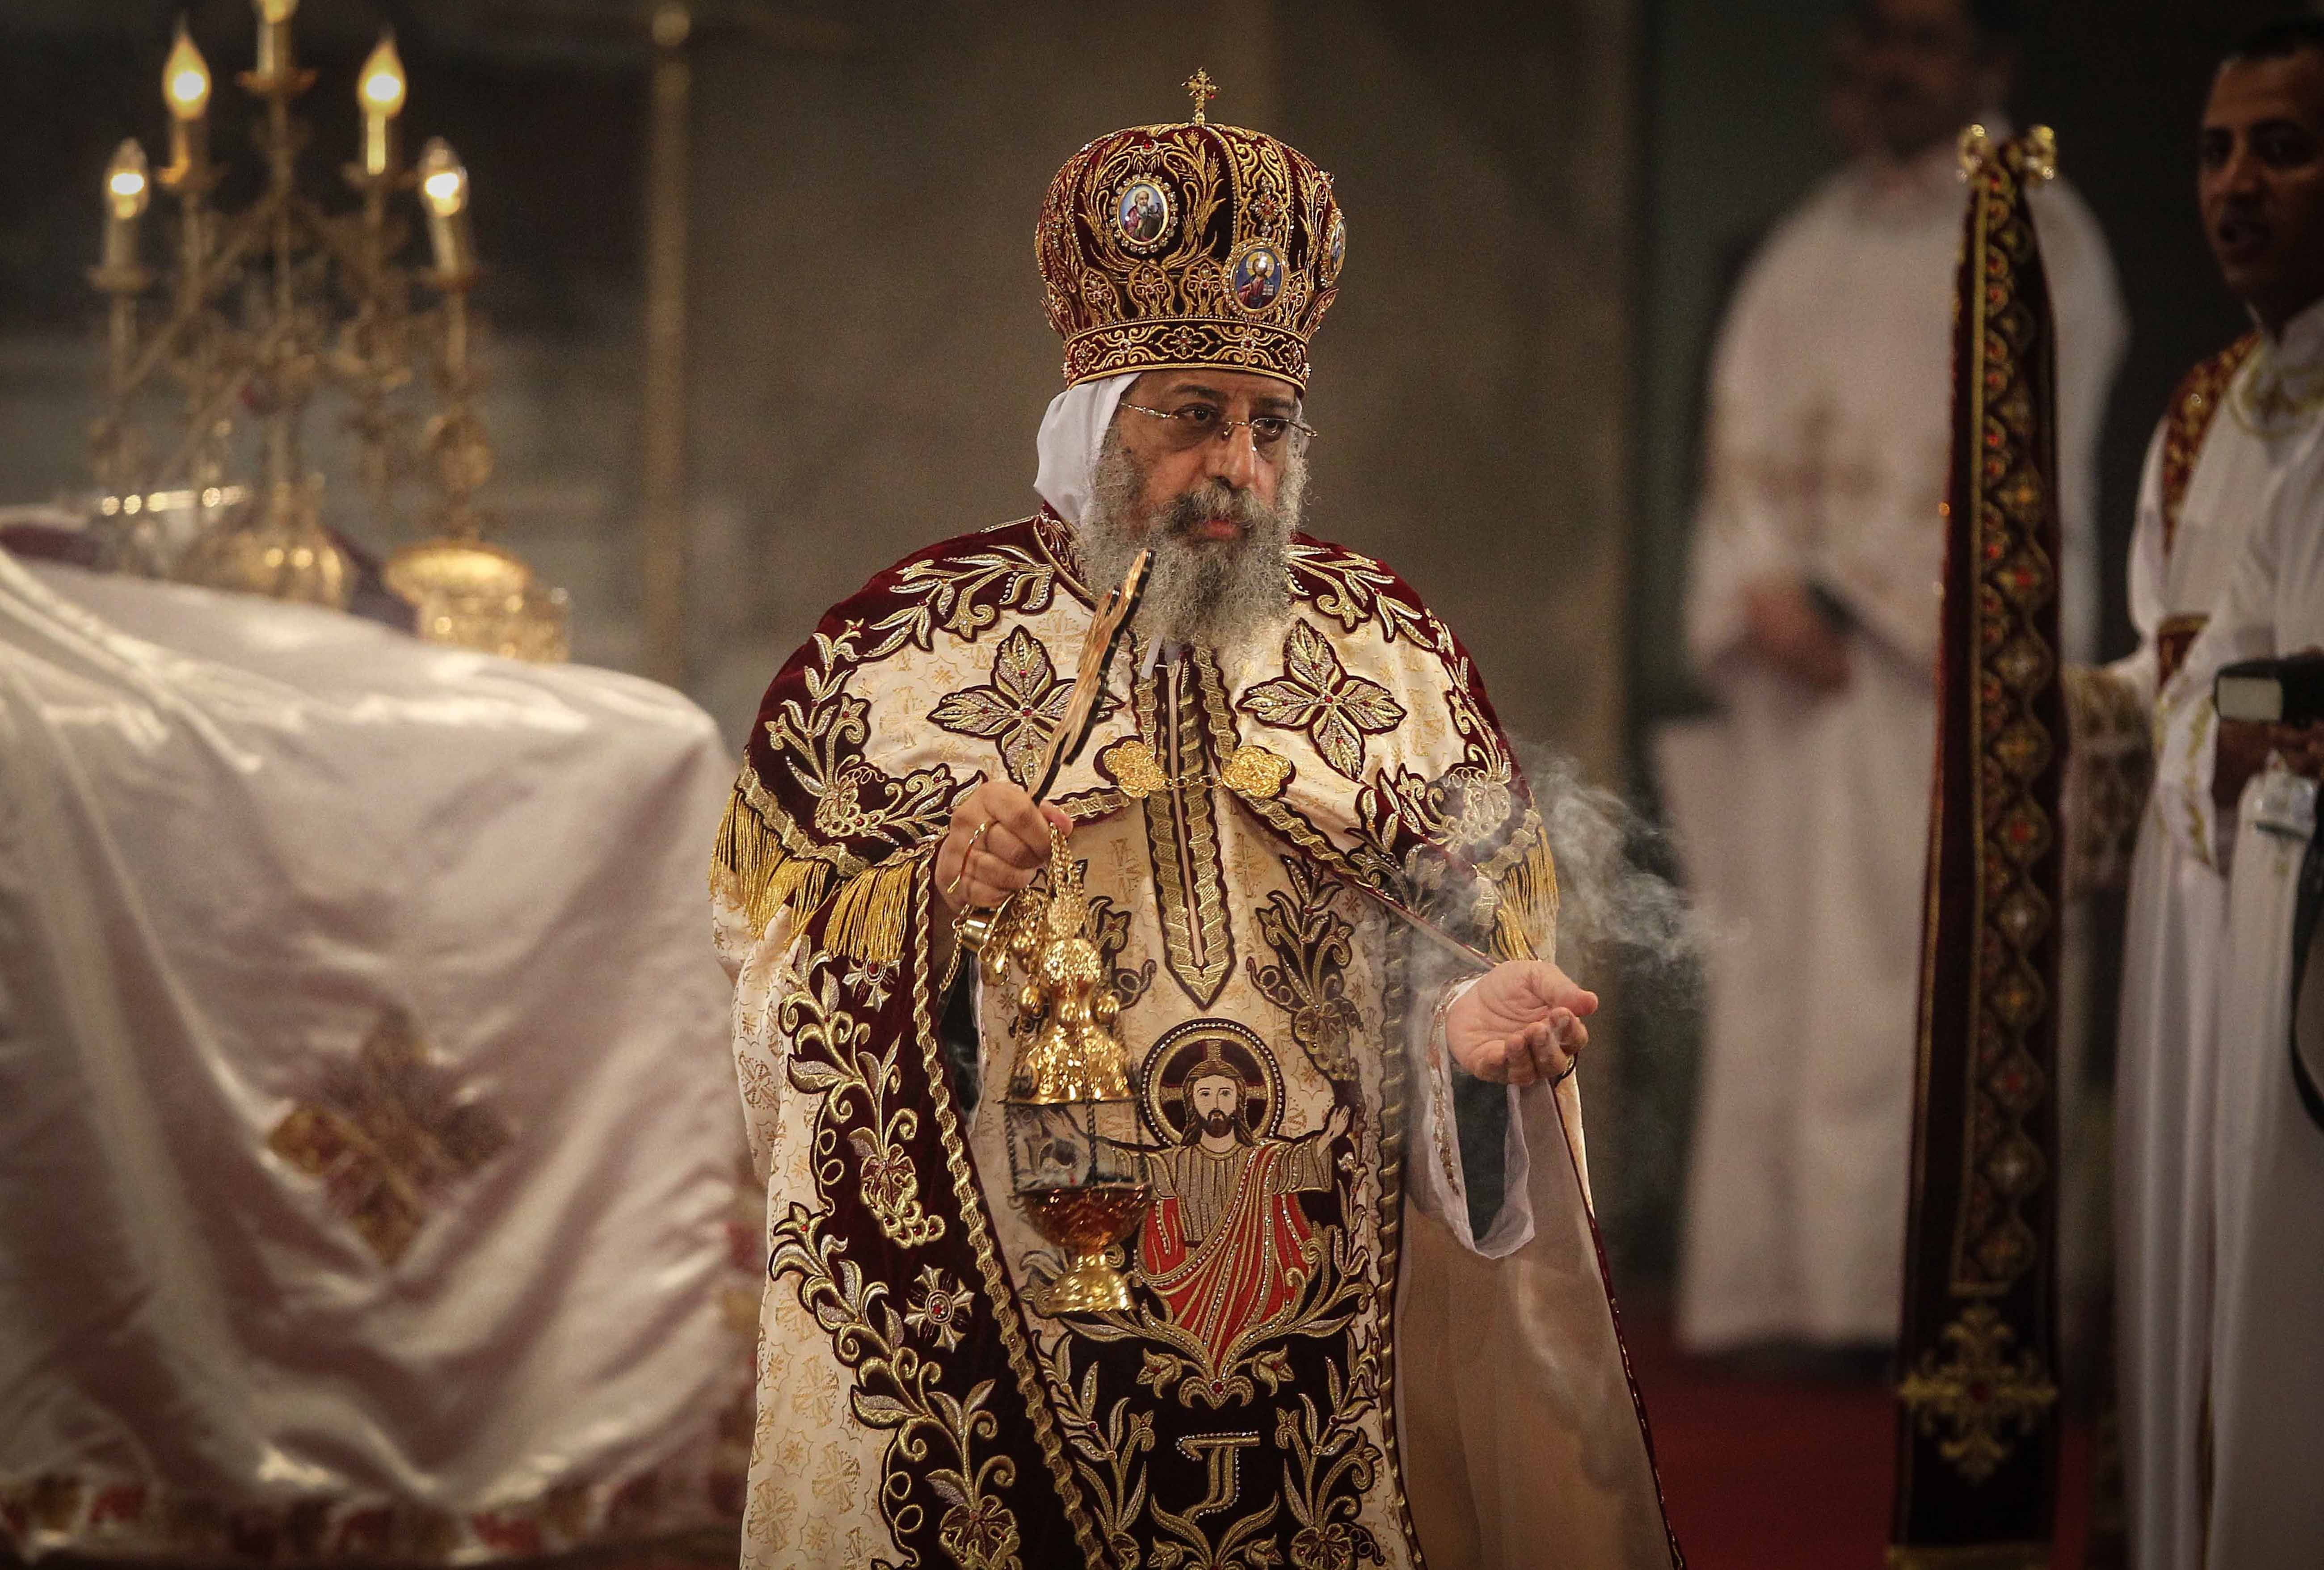 Pope Tawadros II, leader of Egypt's Coptic Church, leads an Easter service late on April 19, 2014 at the Cathedral of Abbasiya in Cairo AFP PHOTO/MOHAMED EL-SHAHED